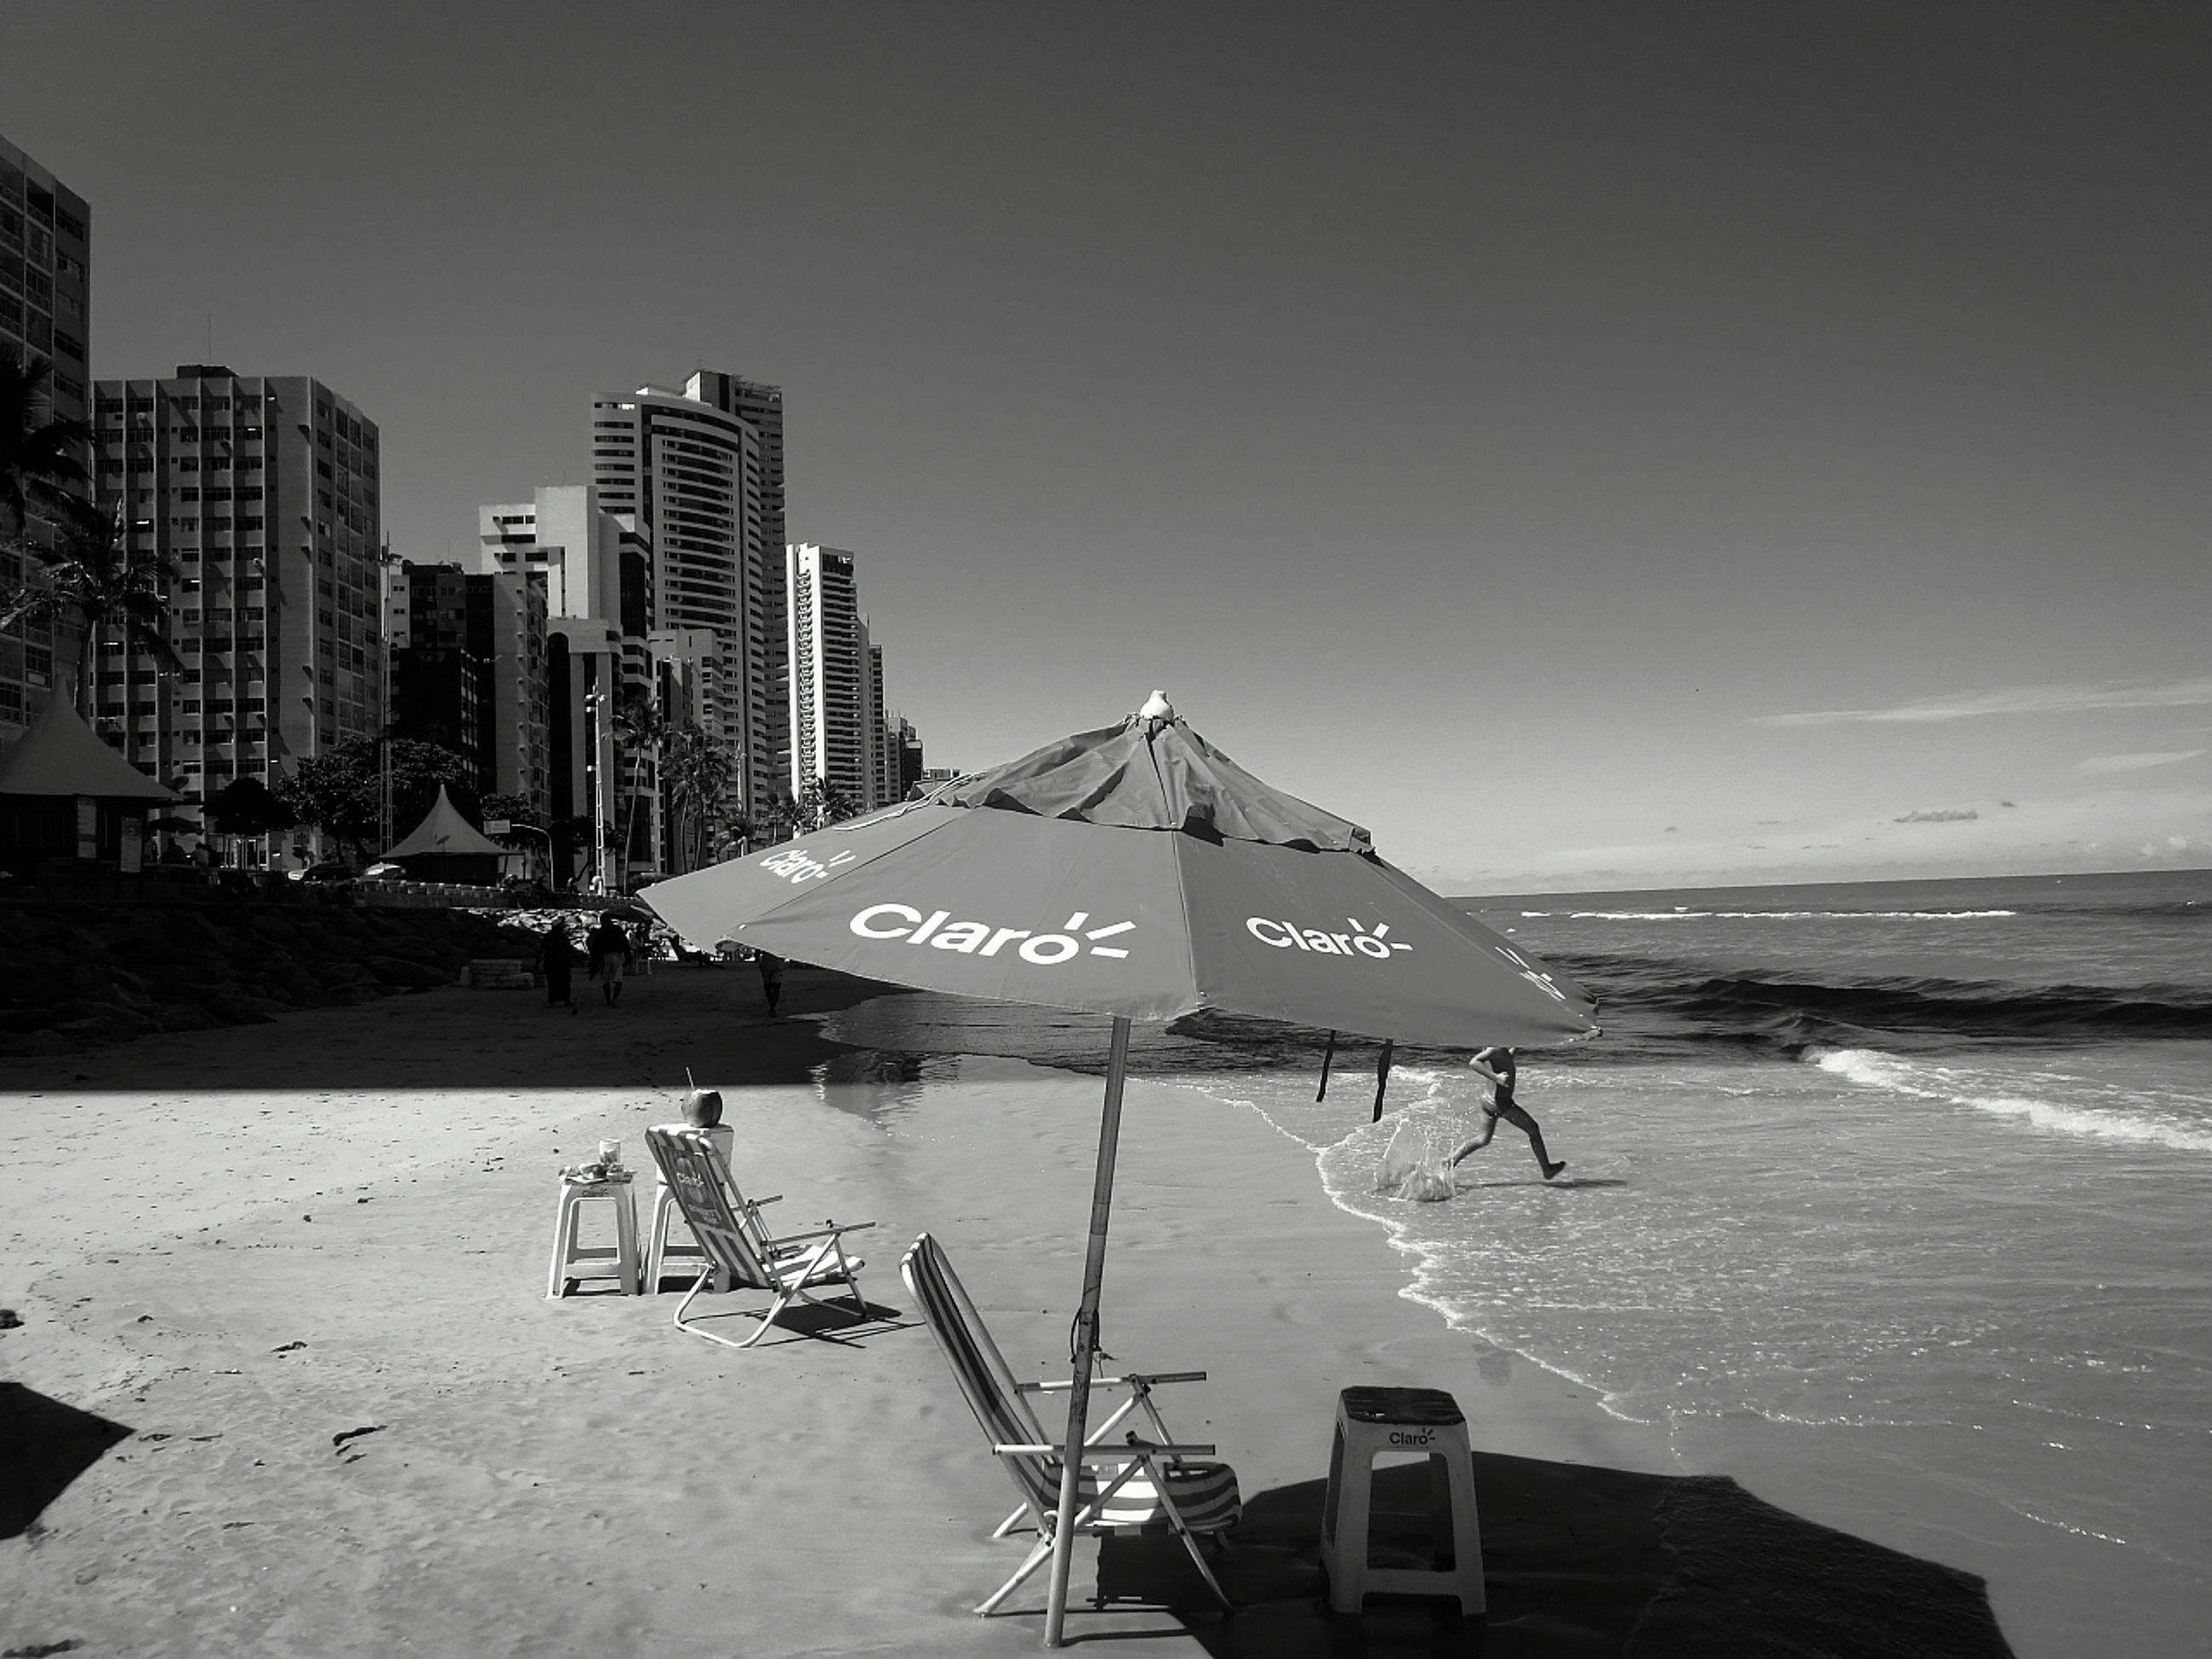 black and white, architecture, water, sky, sea, built structure, beach, building exterior, monochrome, nature, monochrome photography, city, black, land, travel destinations, building, white, urban skyline, no people, outdoors, travel, skyscraper, day, office building exterior, landscape, clear sky, sand, text, communication, sunlight